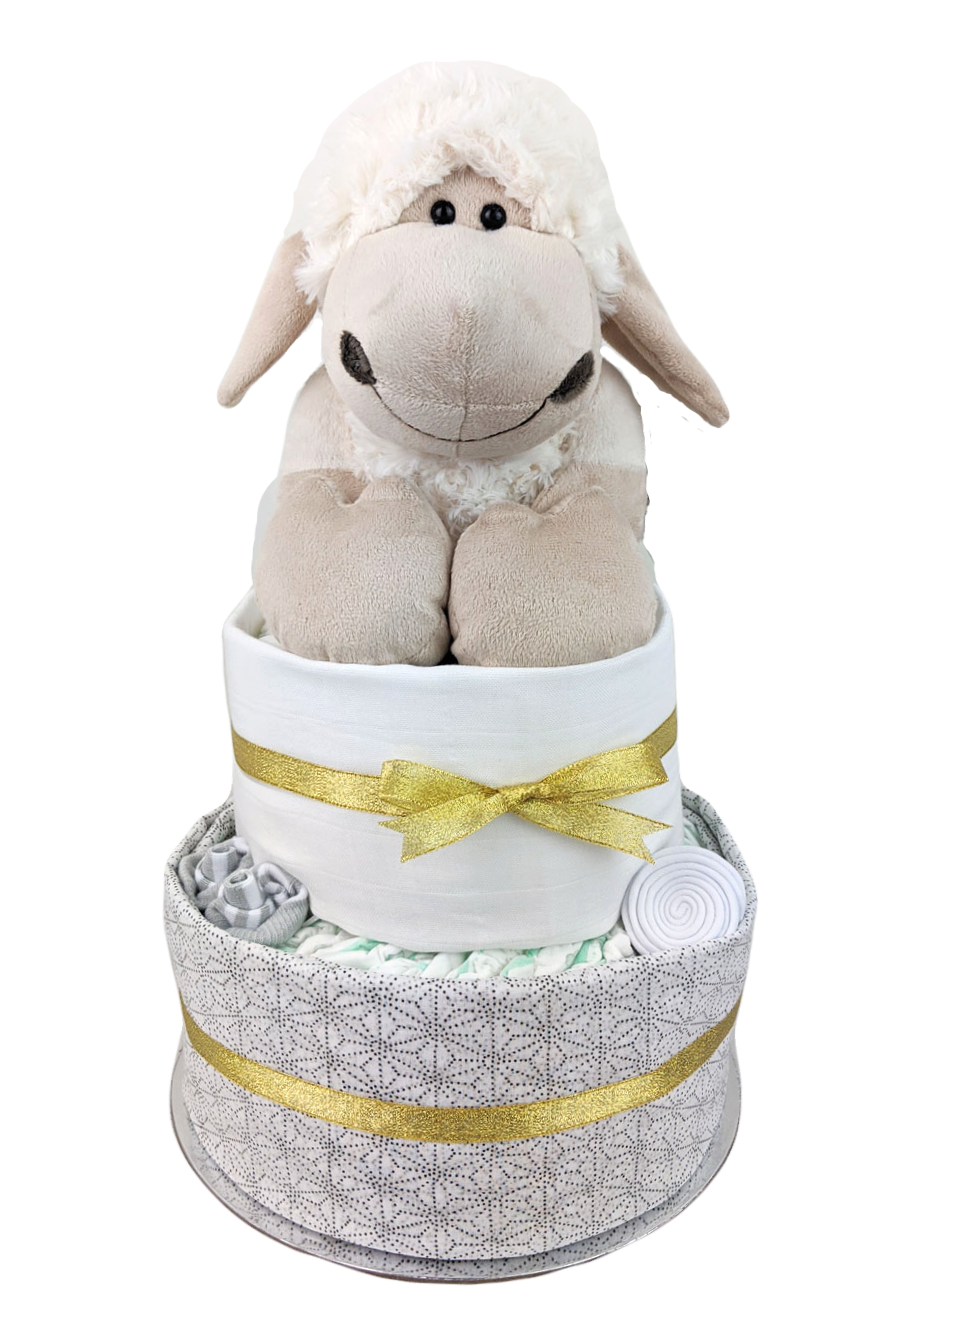 Two Tier White, Grey & Gold Baby Lamb Nappy Cake